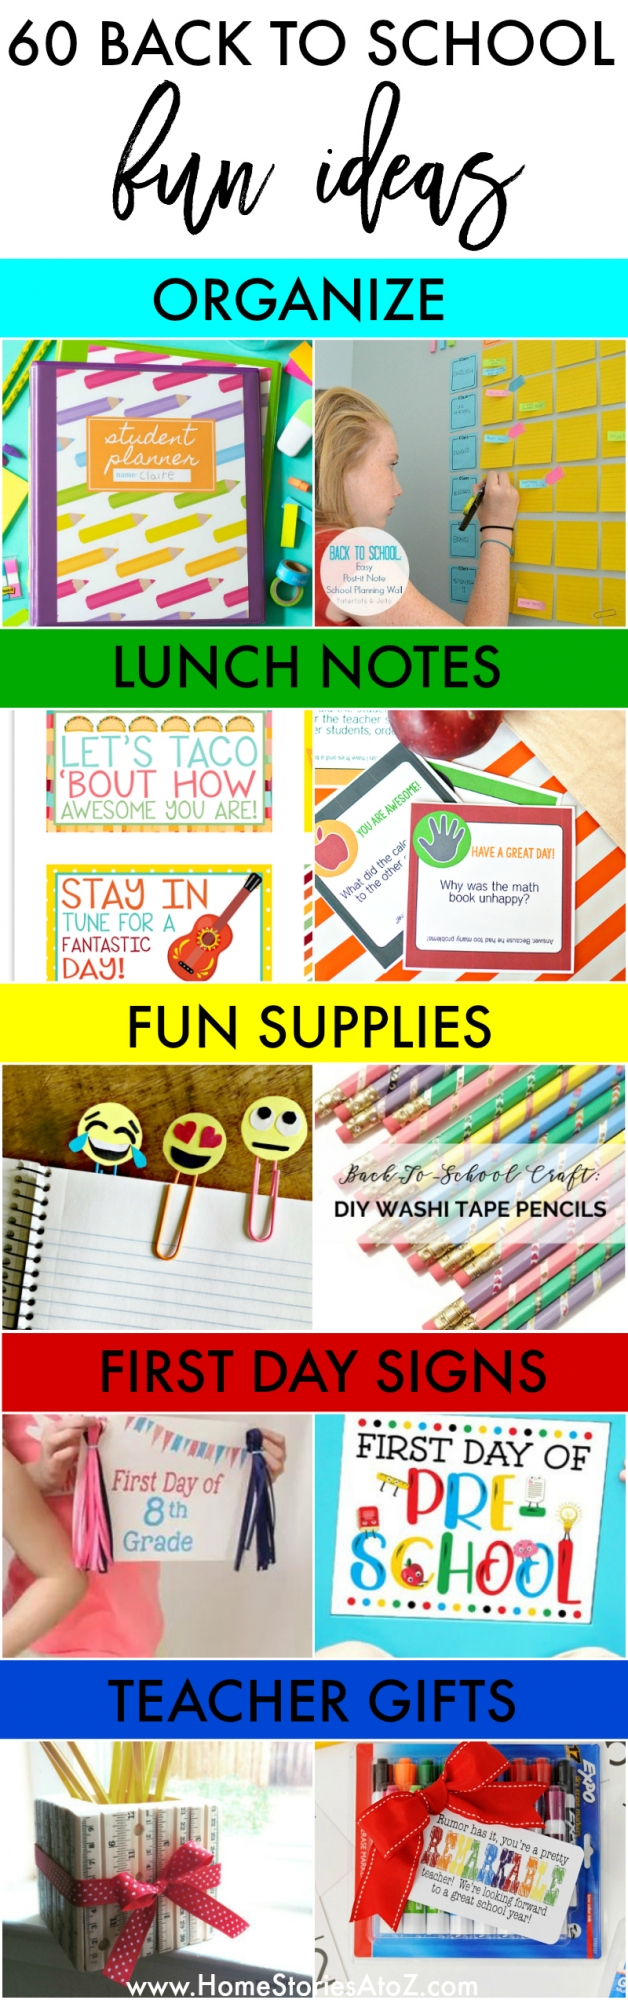 60 Fun Ideas for Back to School